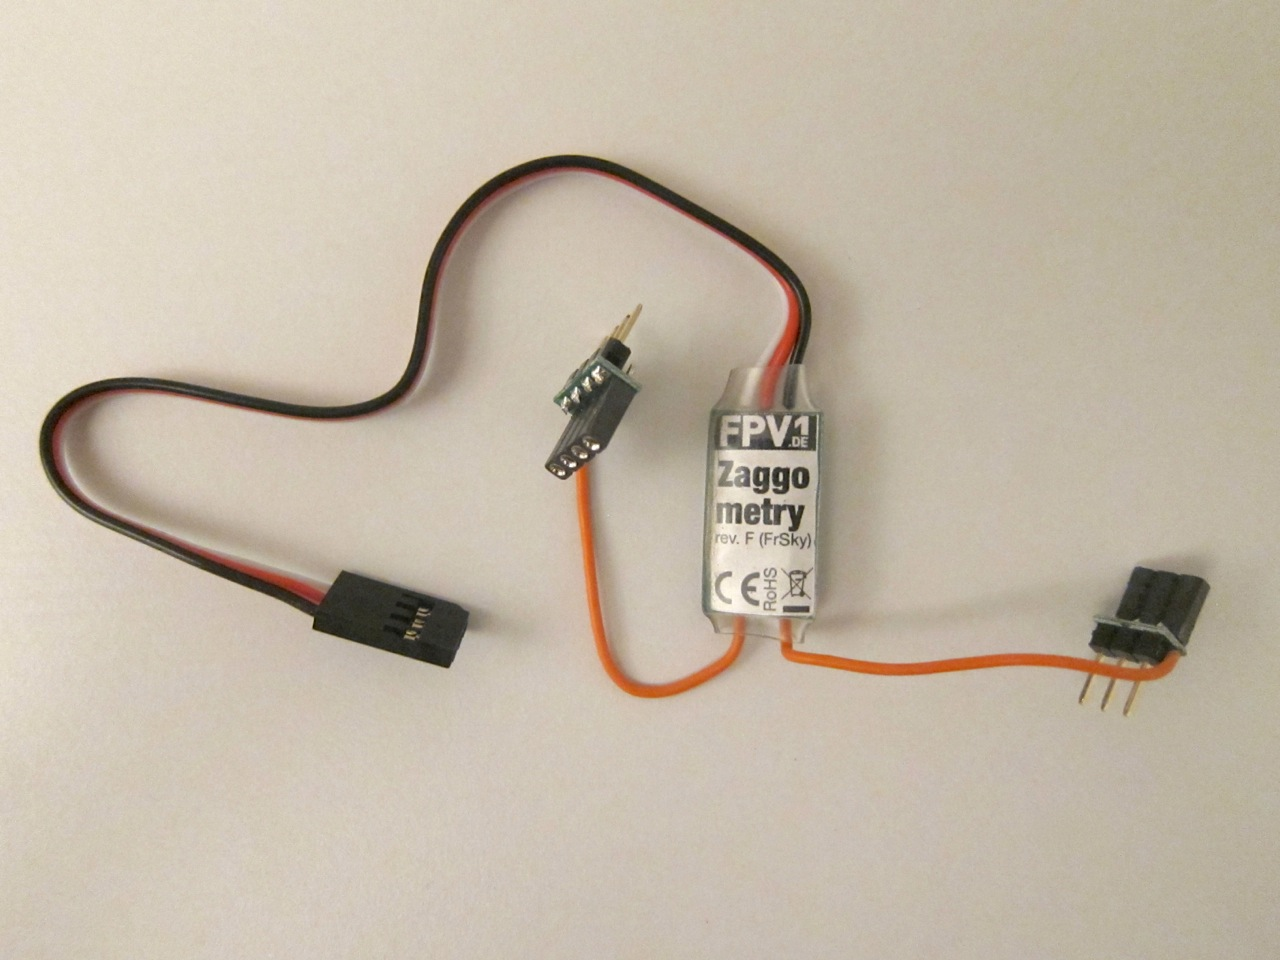 Zaggometry telemetry adapter: capable of reading the NAZA GPS and onboard voltage.